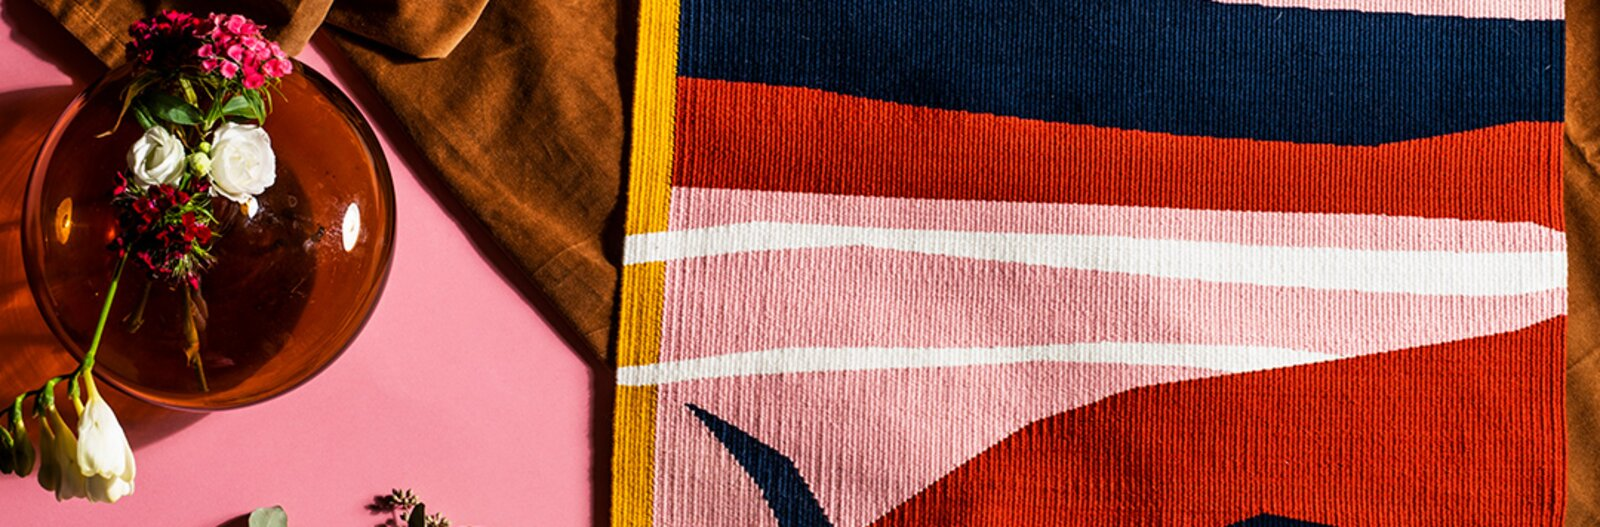 6 top textile shops to check out this autumn